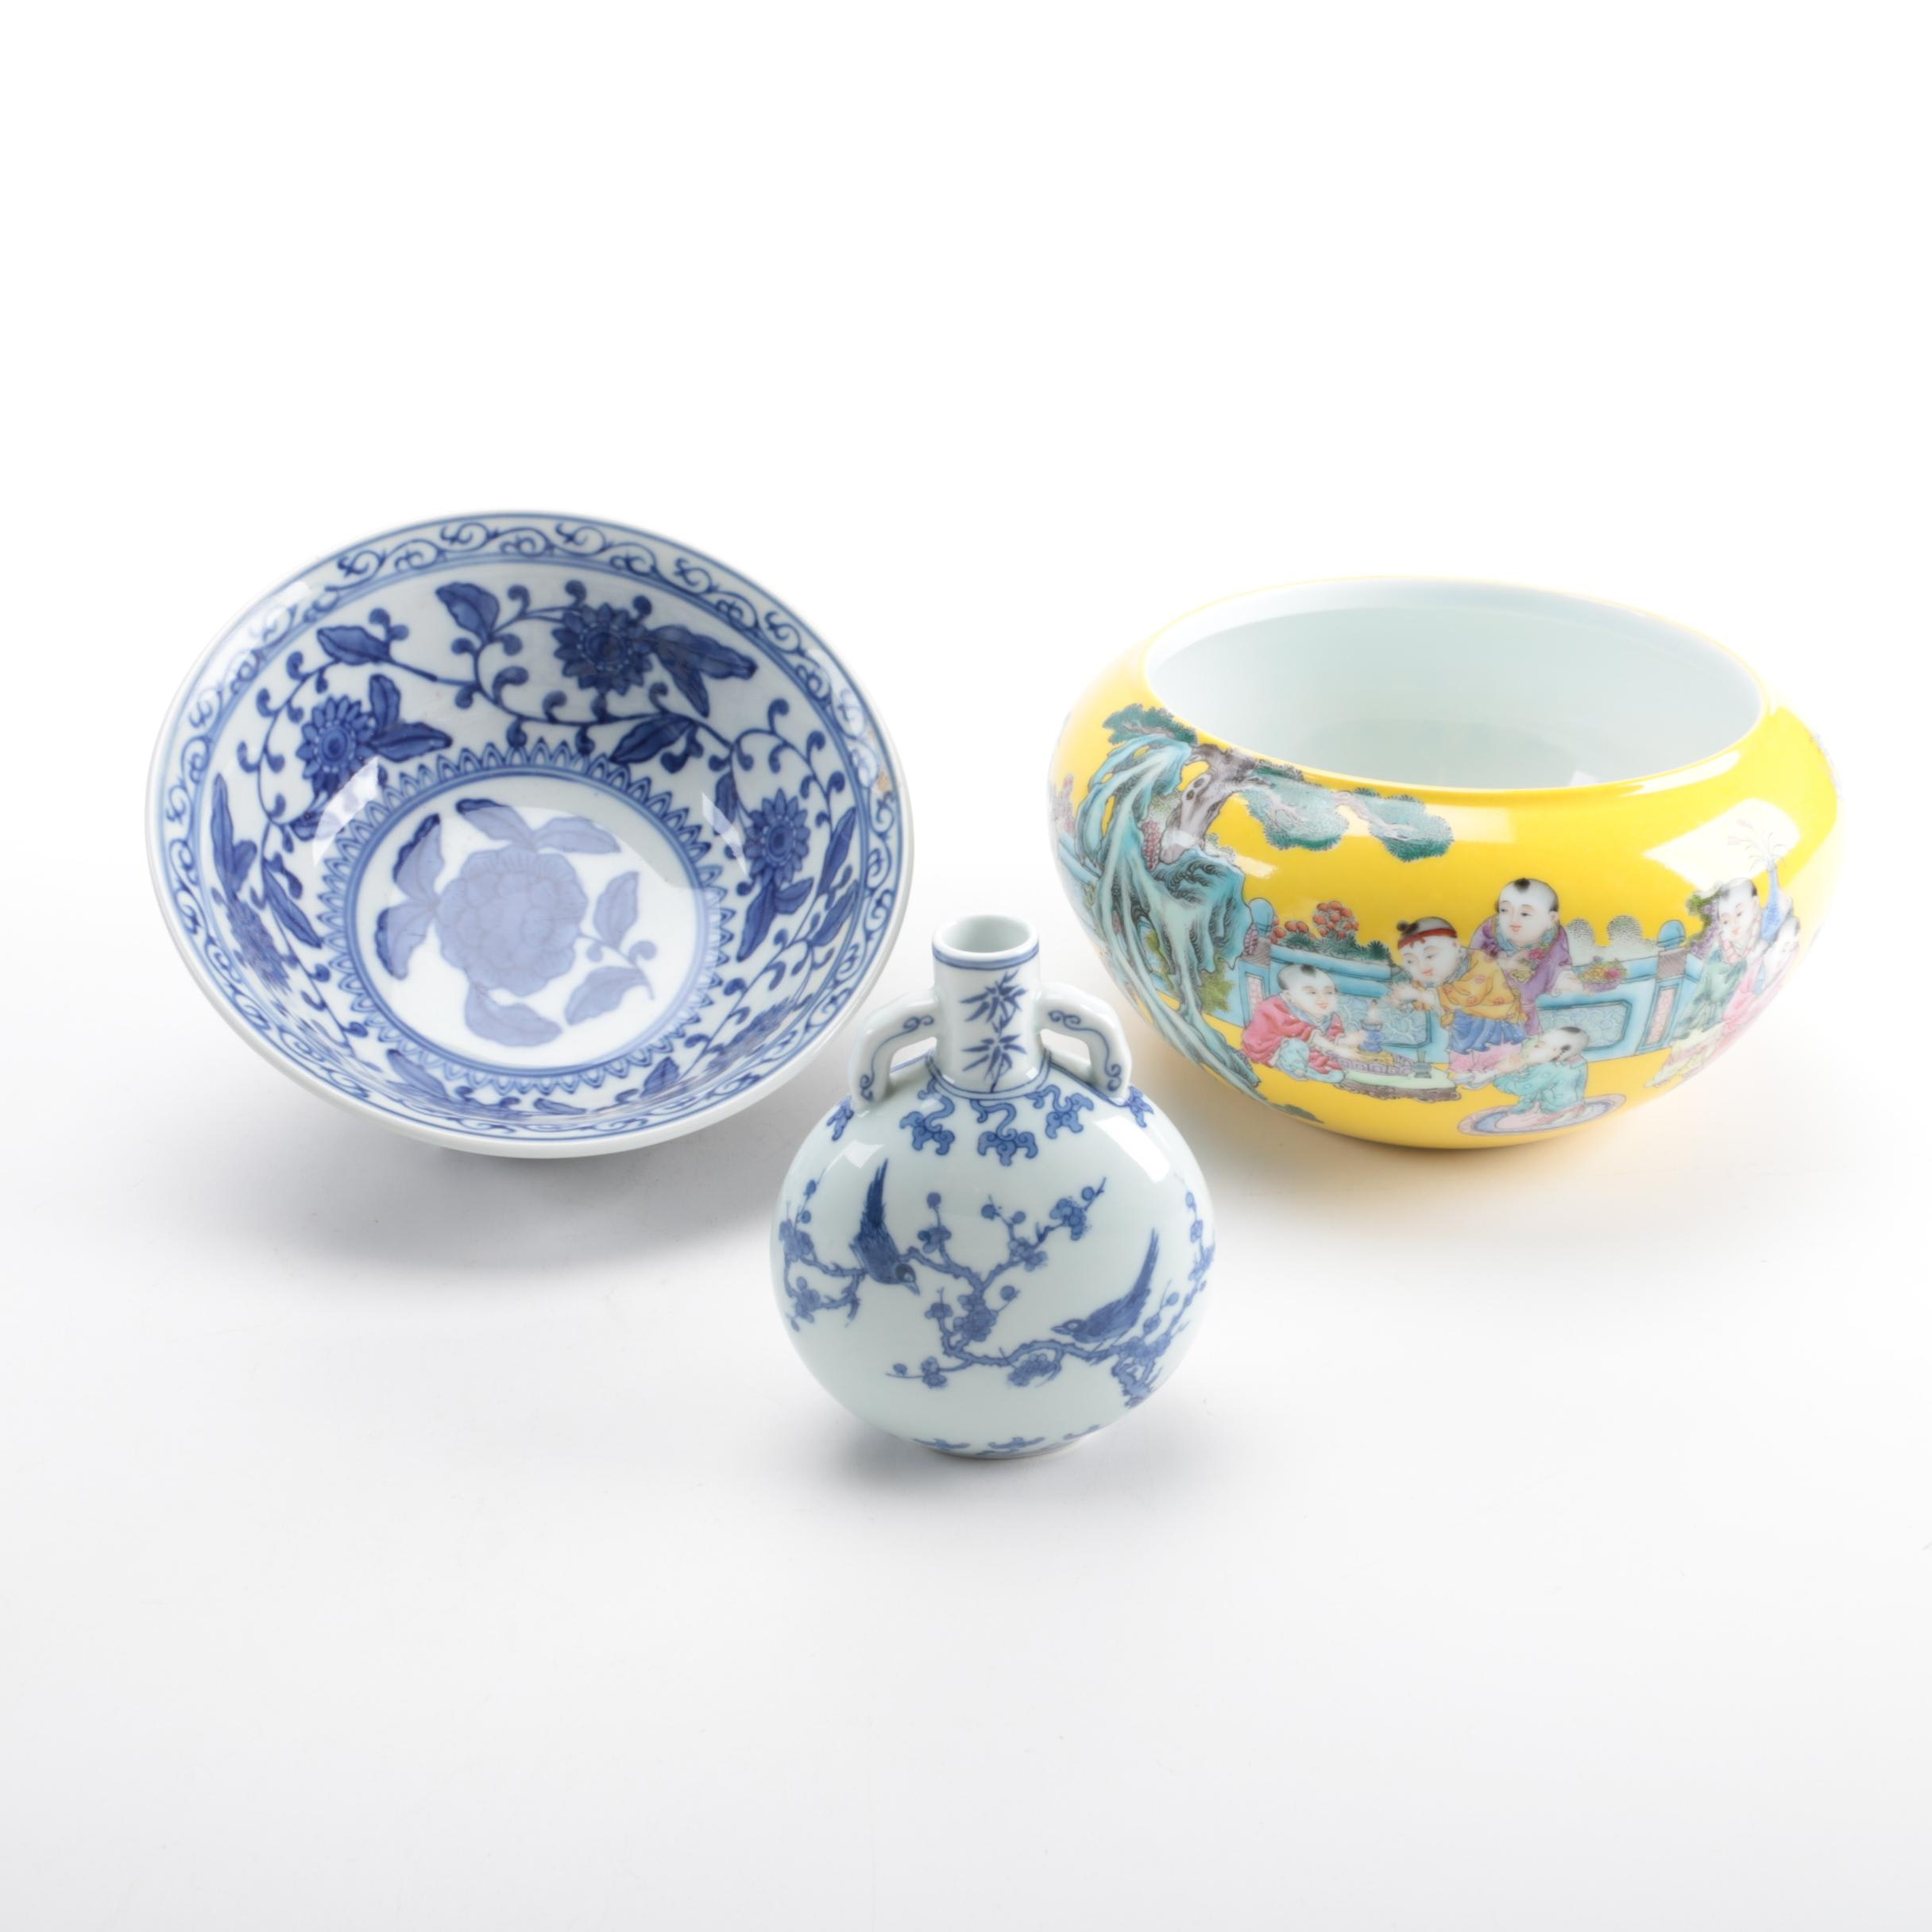 Chinese Ceramic Bowls and Vessels